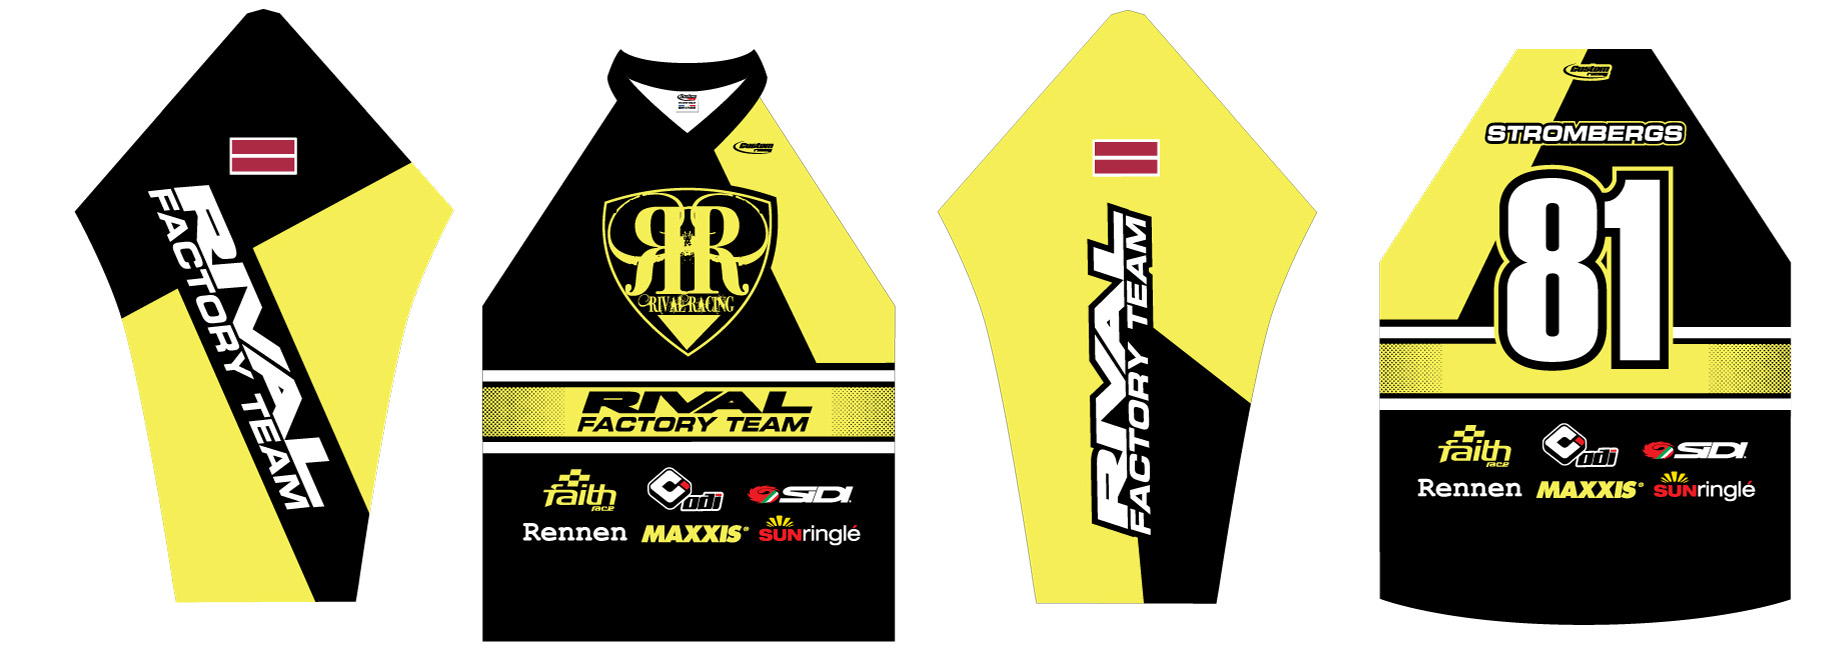 Maris Strombergs Rival Jersey